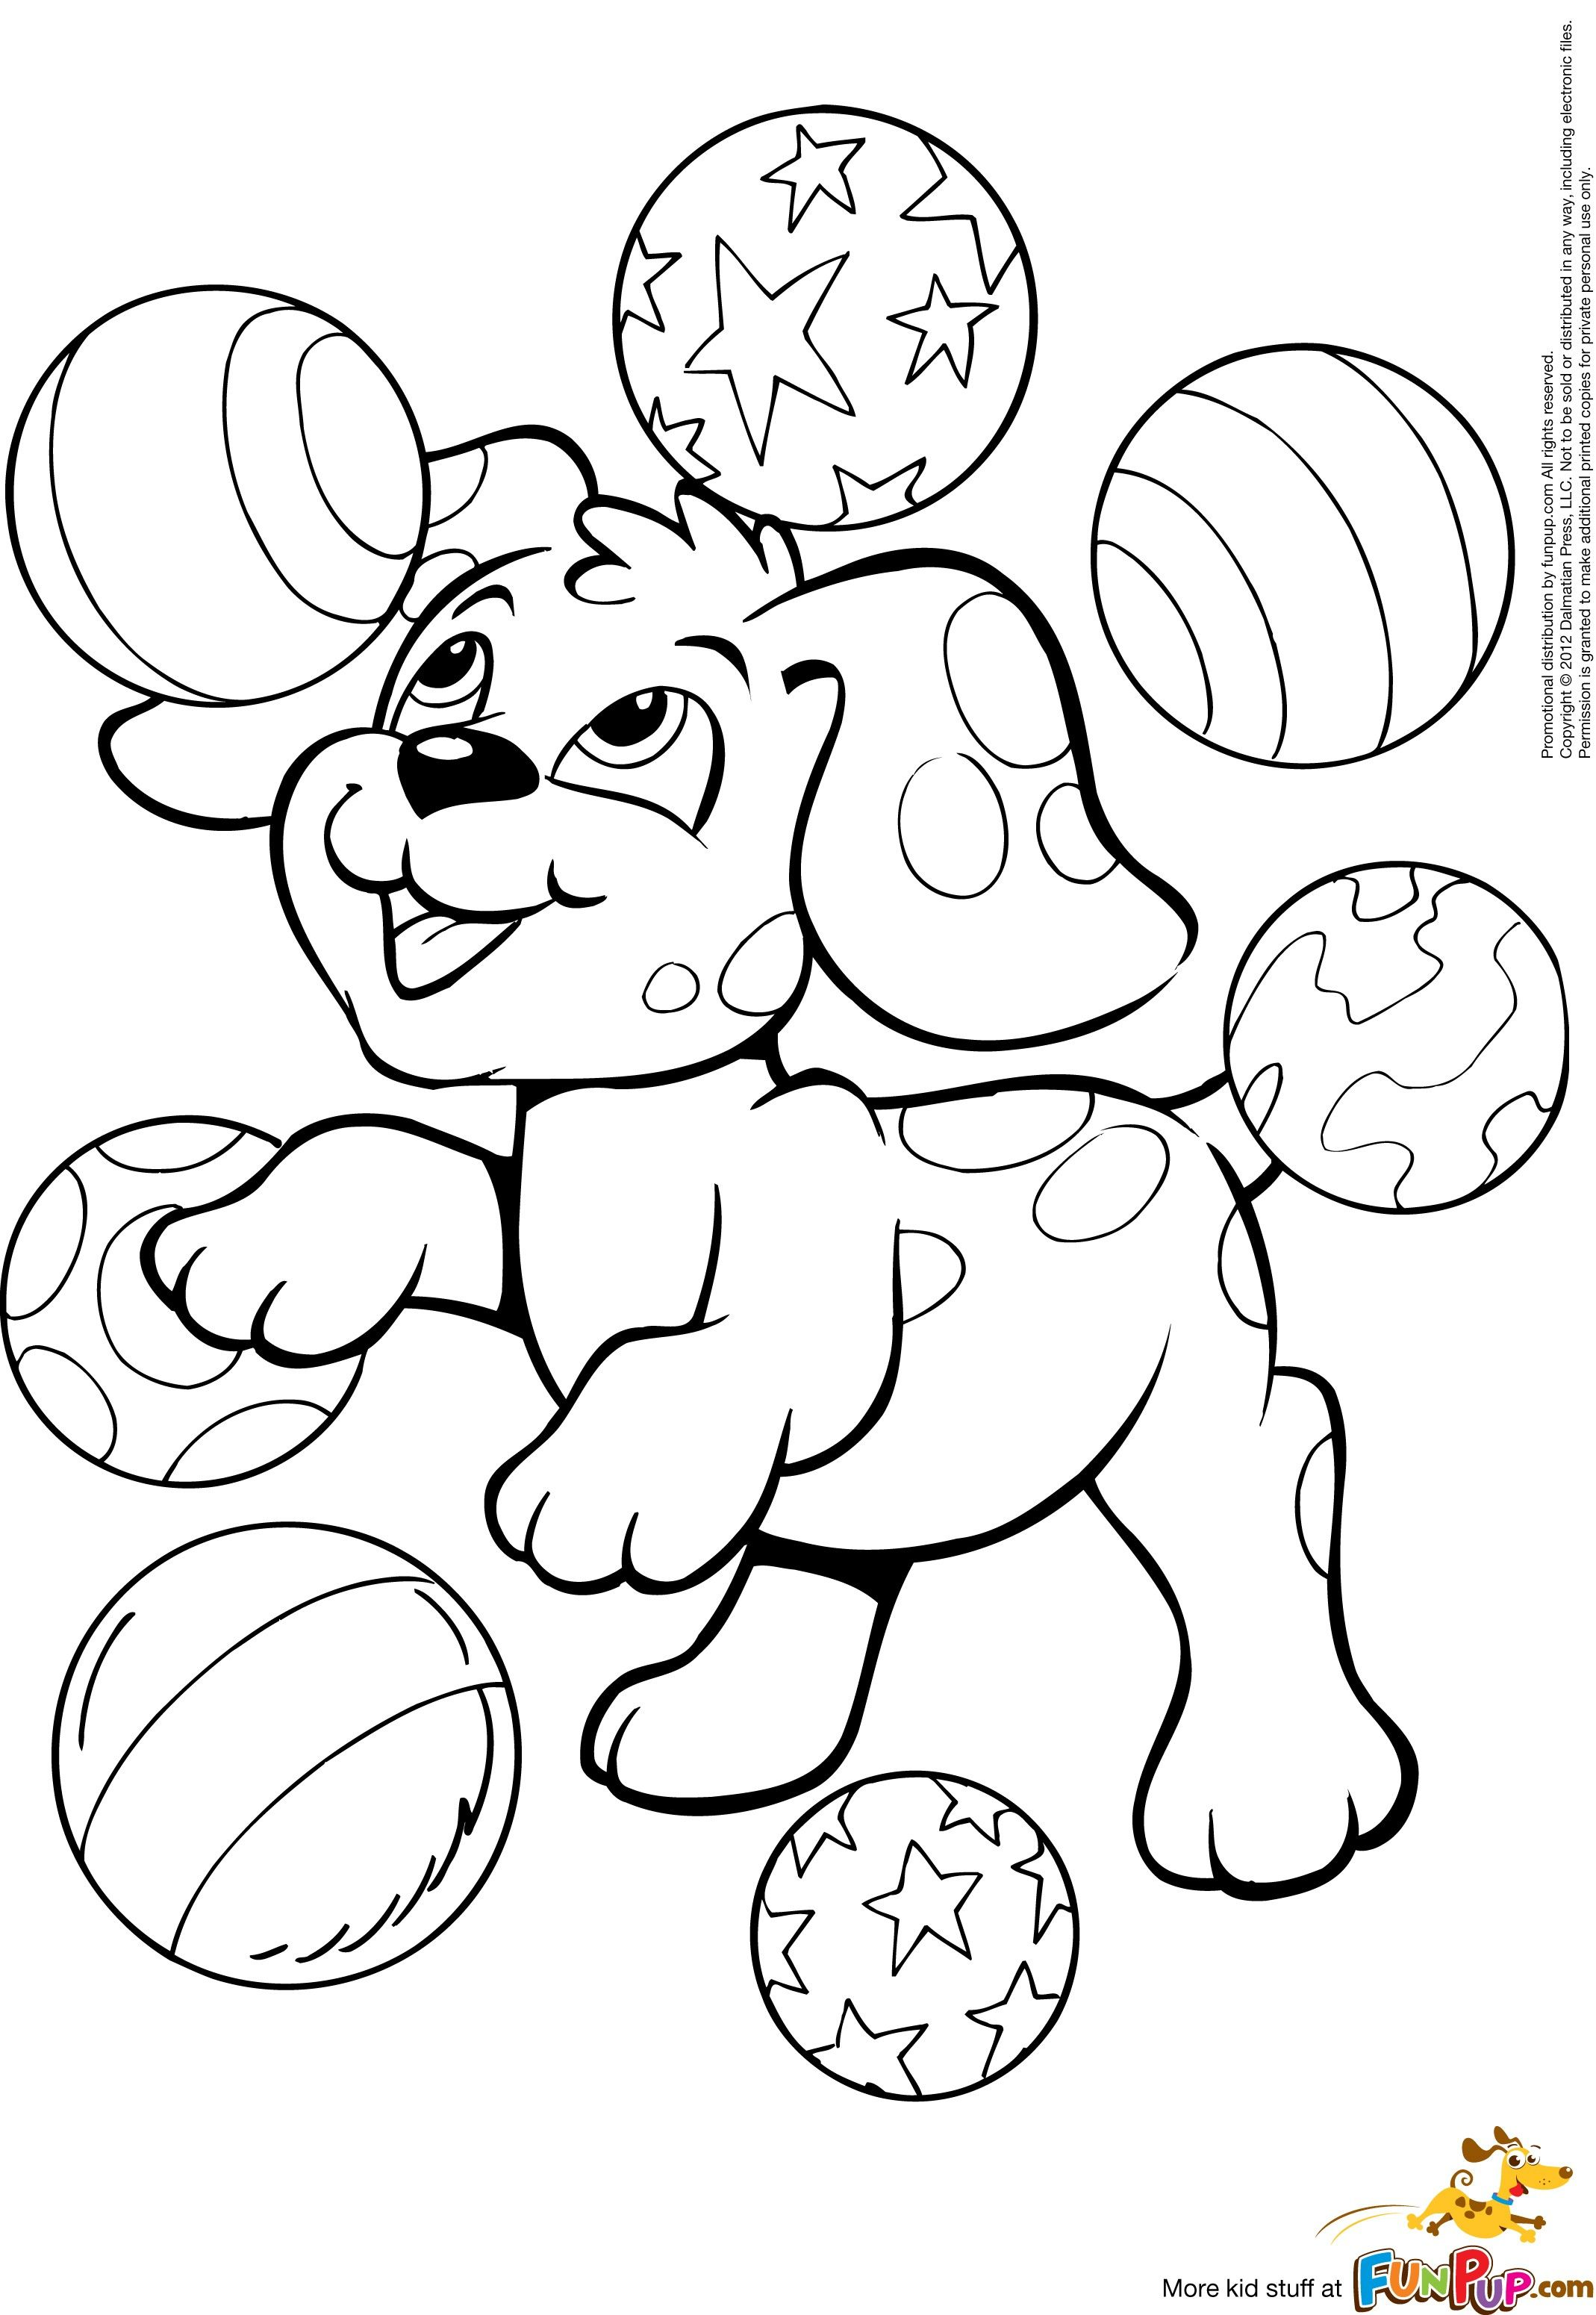 Perplexed By Dogs We Have The Knowledge You Need Puppy Coloring